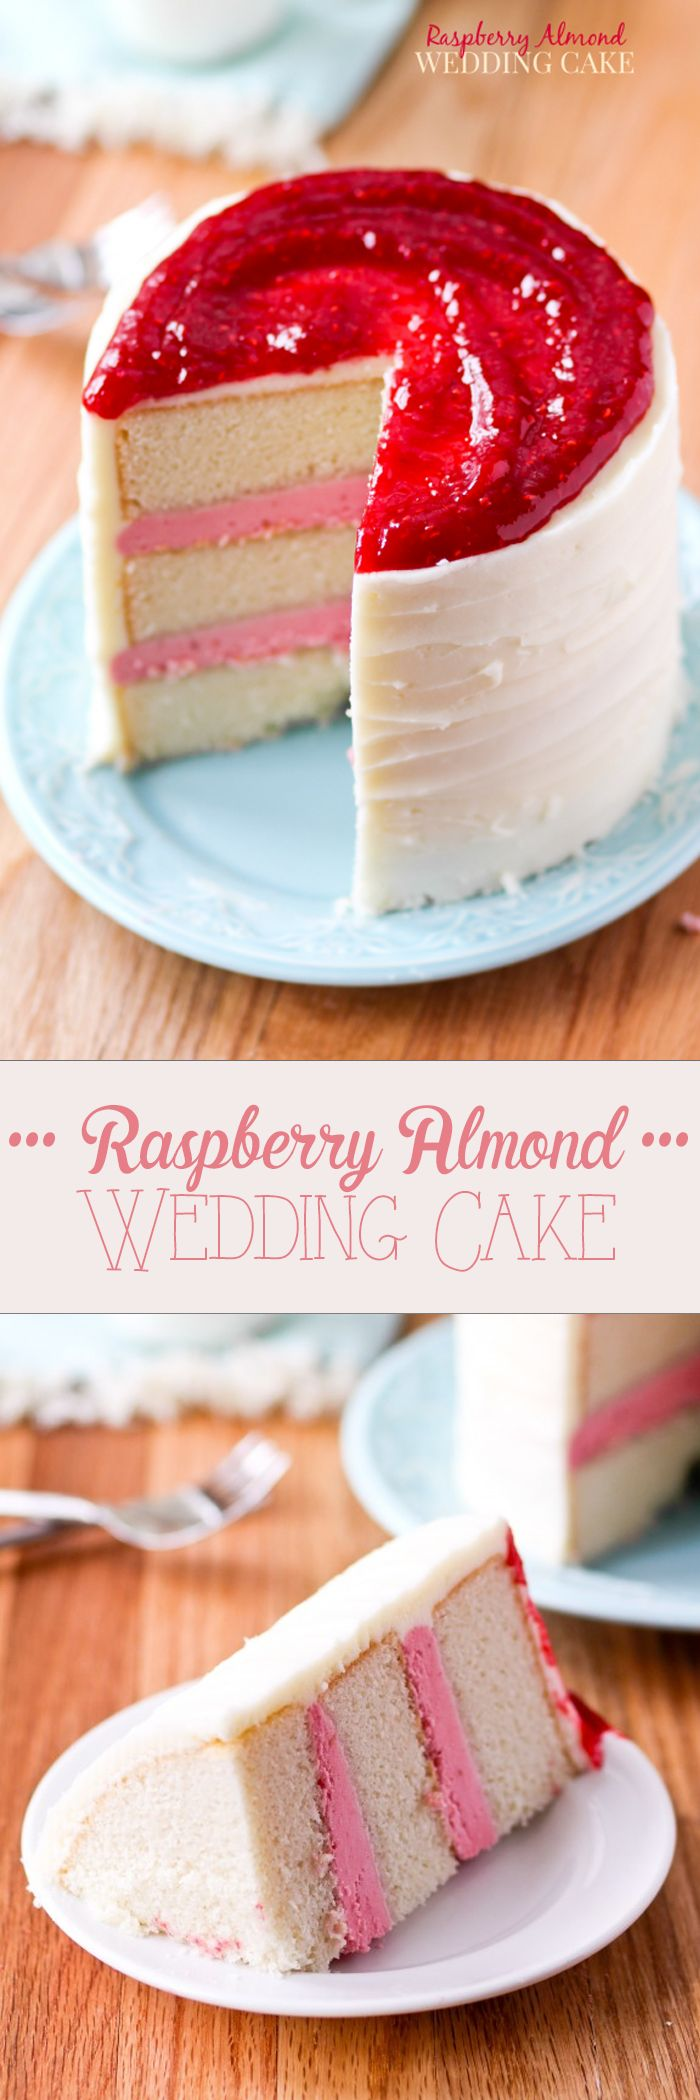 RASPBERRY ALMOND WEDDING CAKE -- I am absolutely obsessed with this cake! Probably the best I've ever had. My favorite for special occasions.